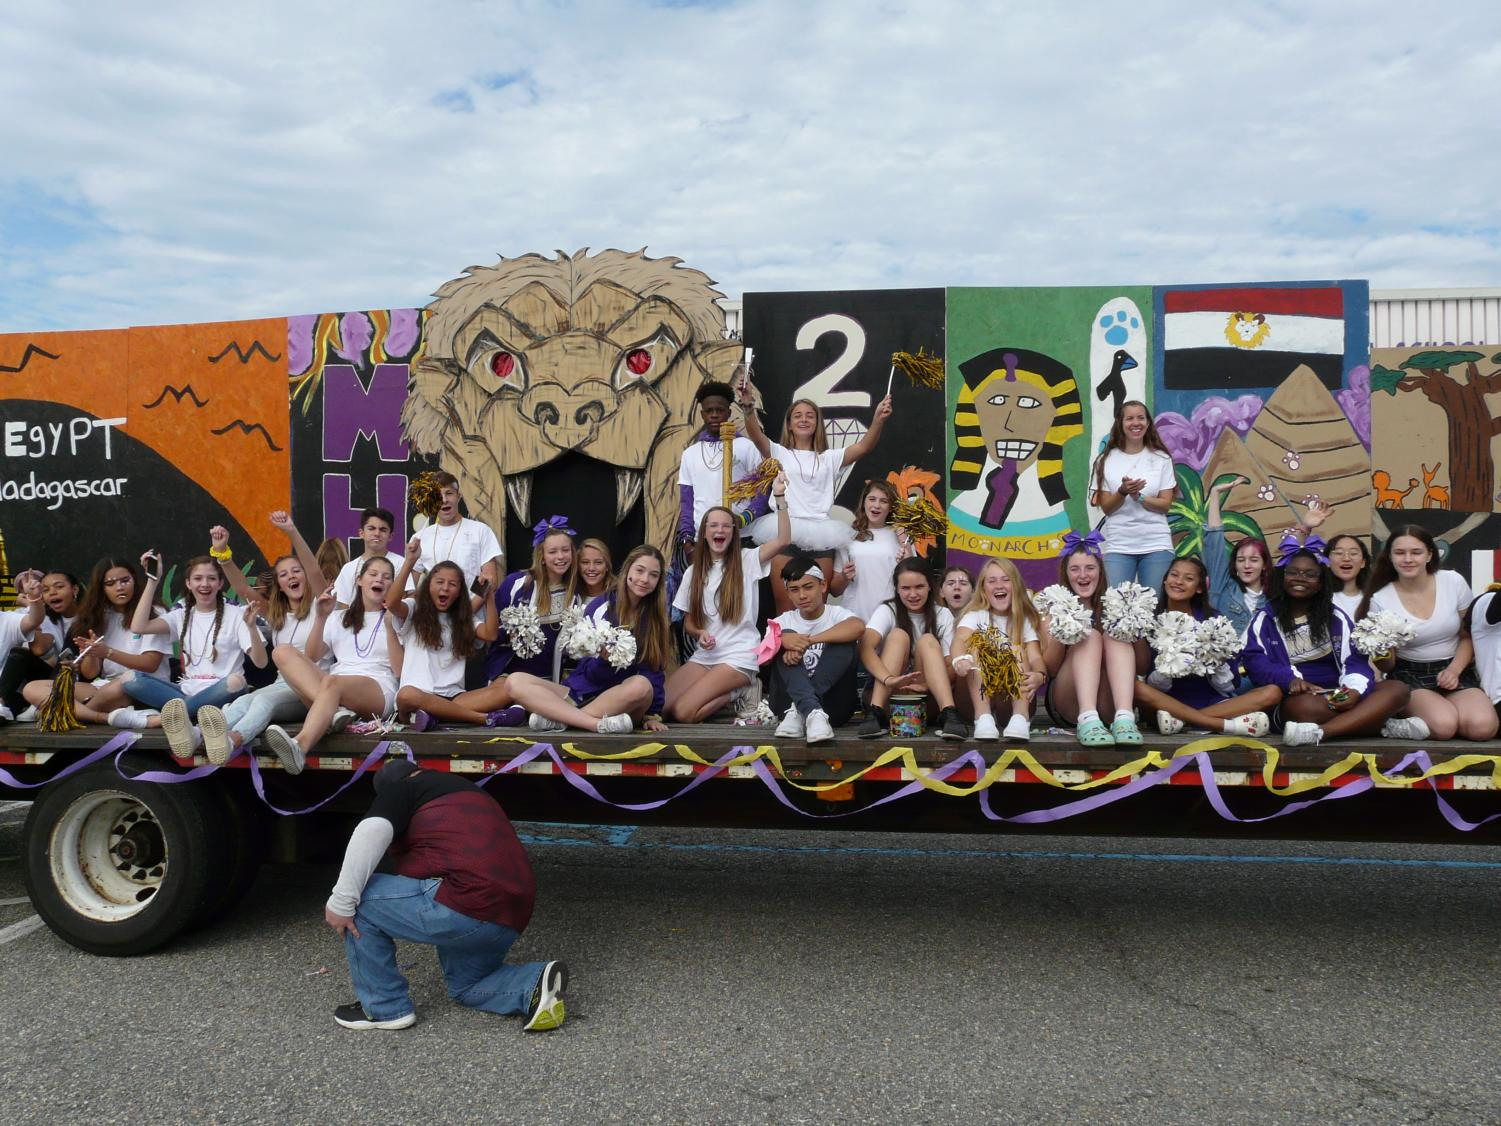 Freshmen+crowd+the+float+and+prepare+for+the+parade.